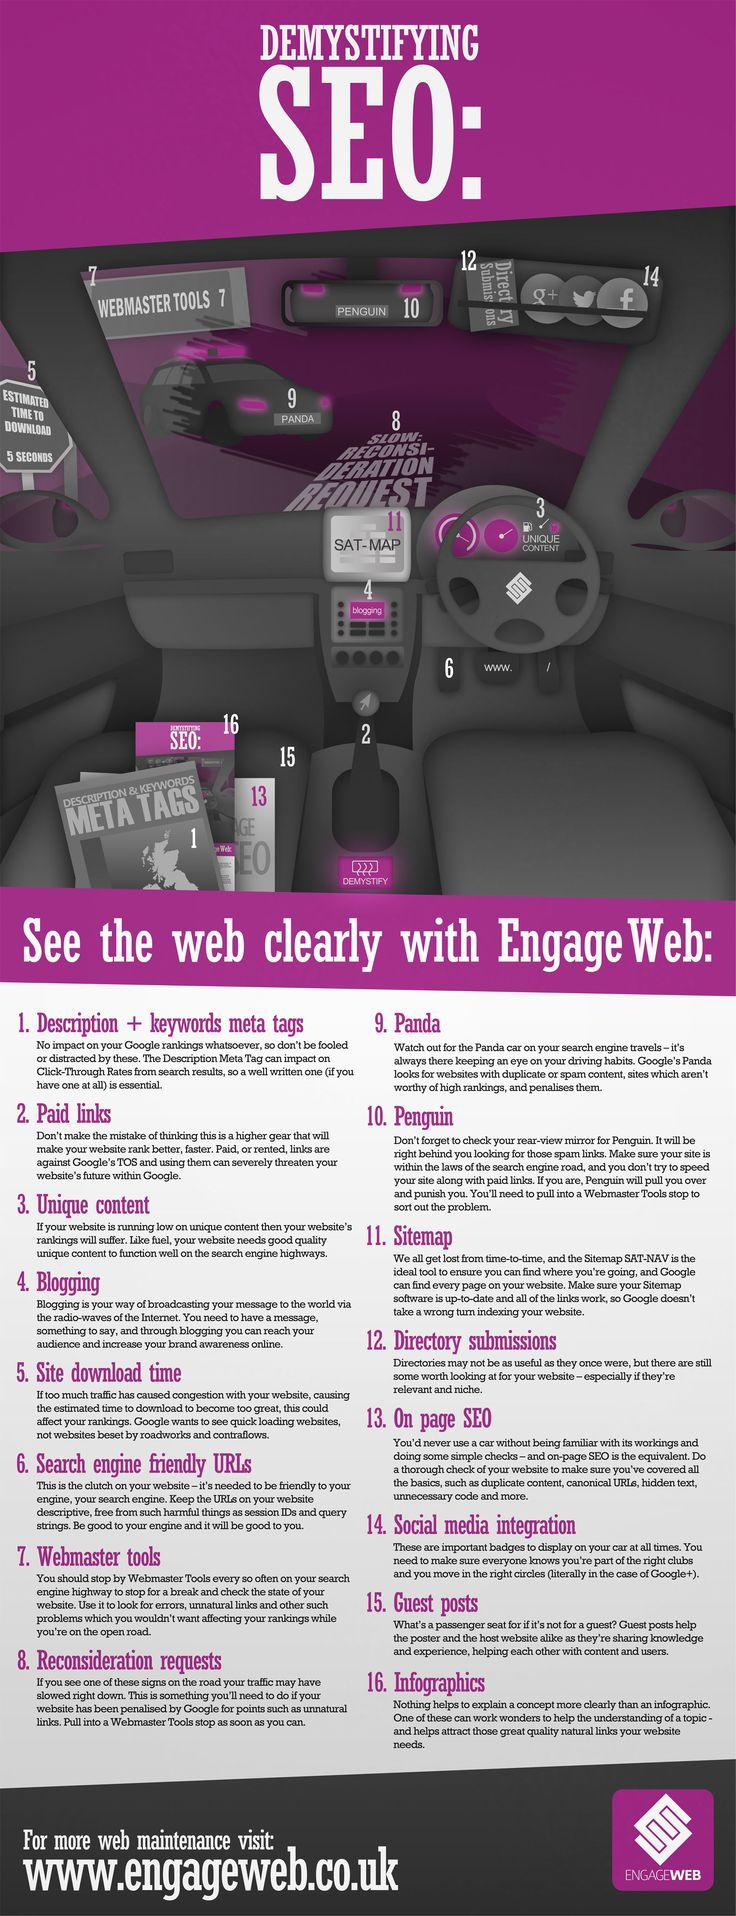 #Infographic: SEO car. More SEO help at http://getonthemap.us/... #573tips #SEO